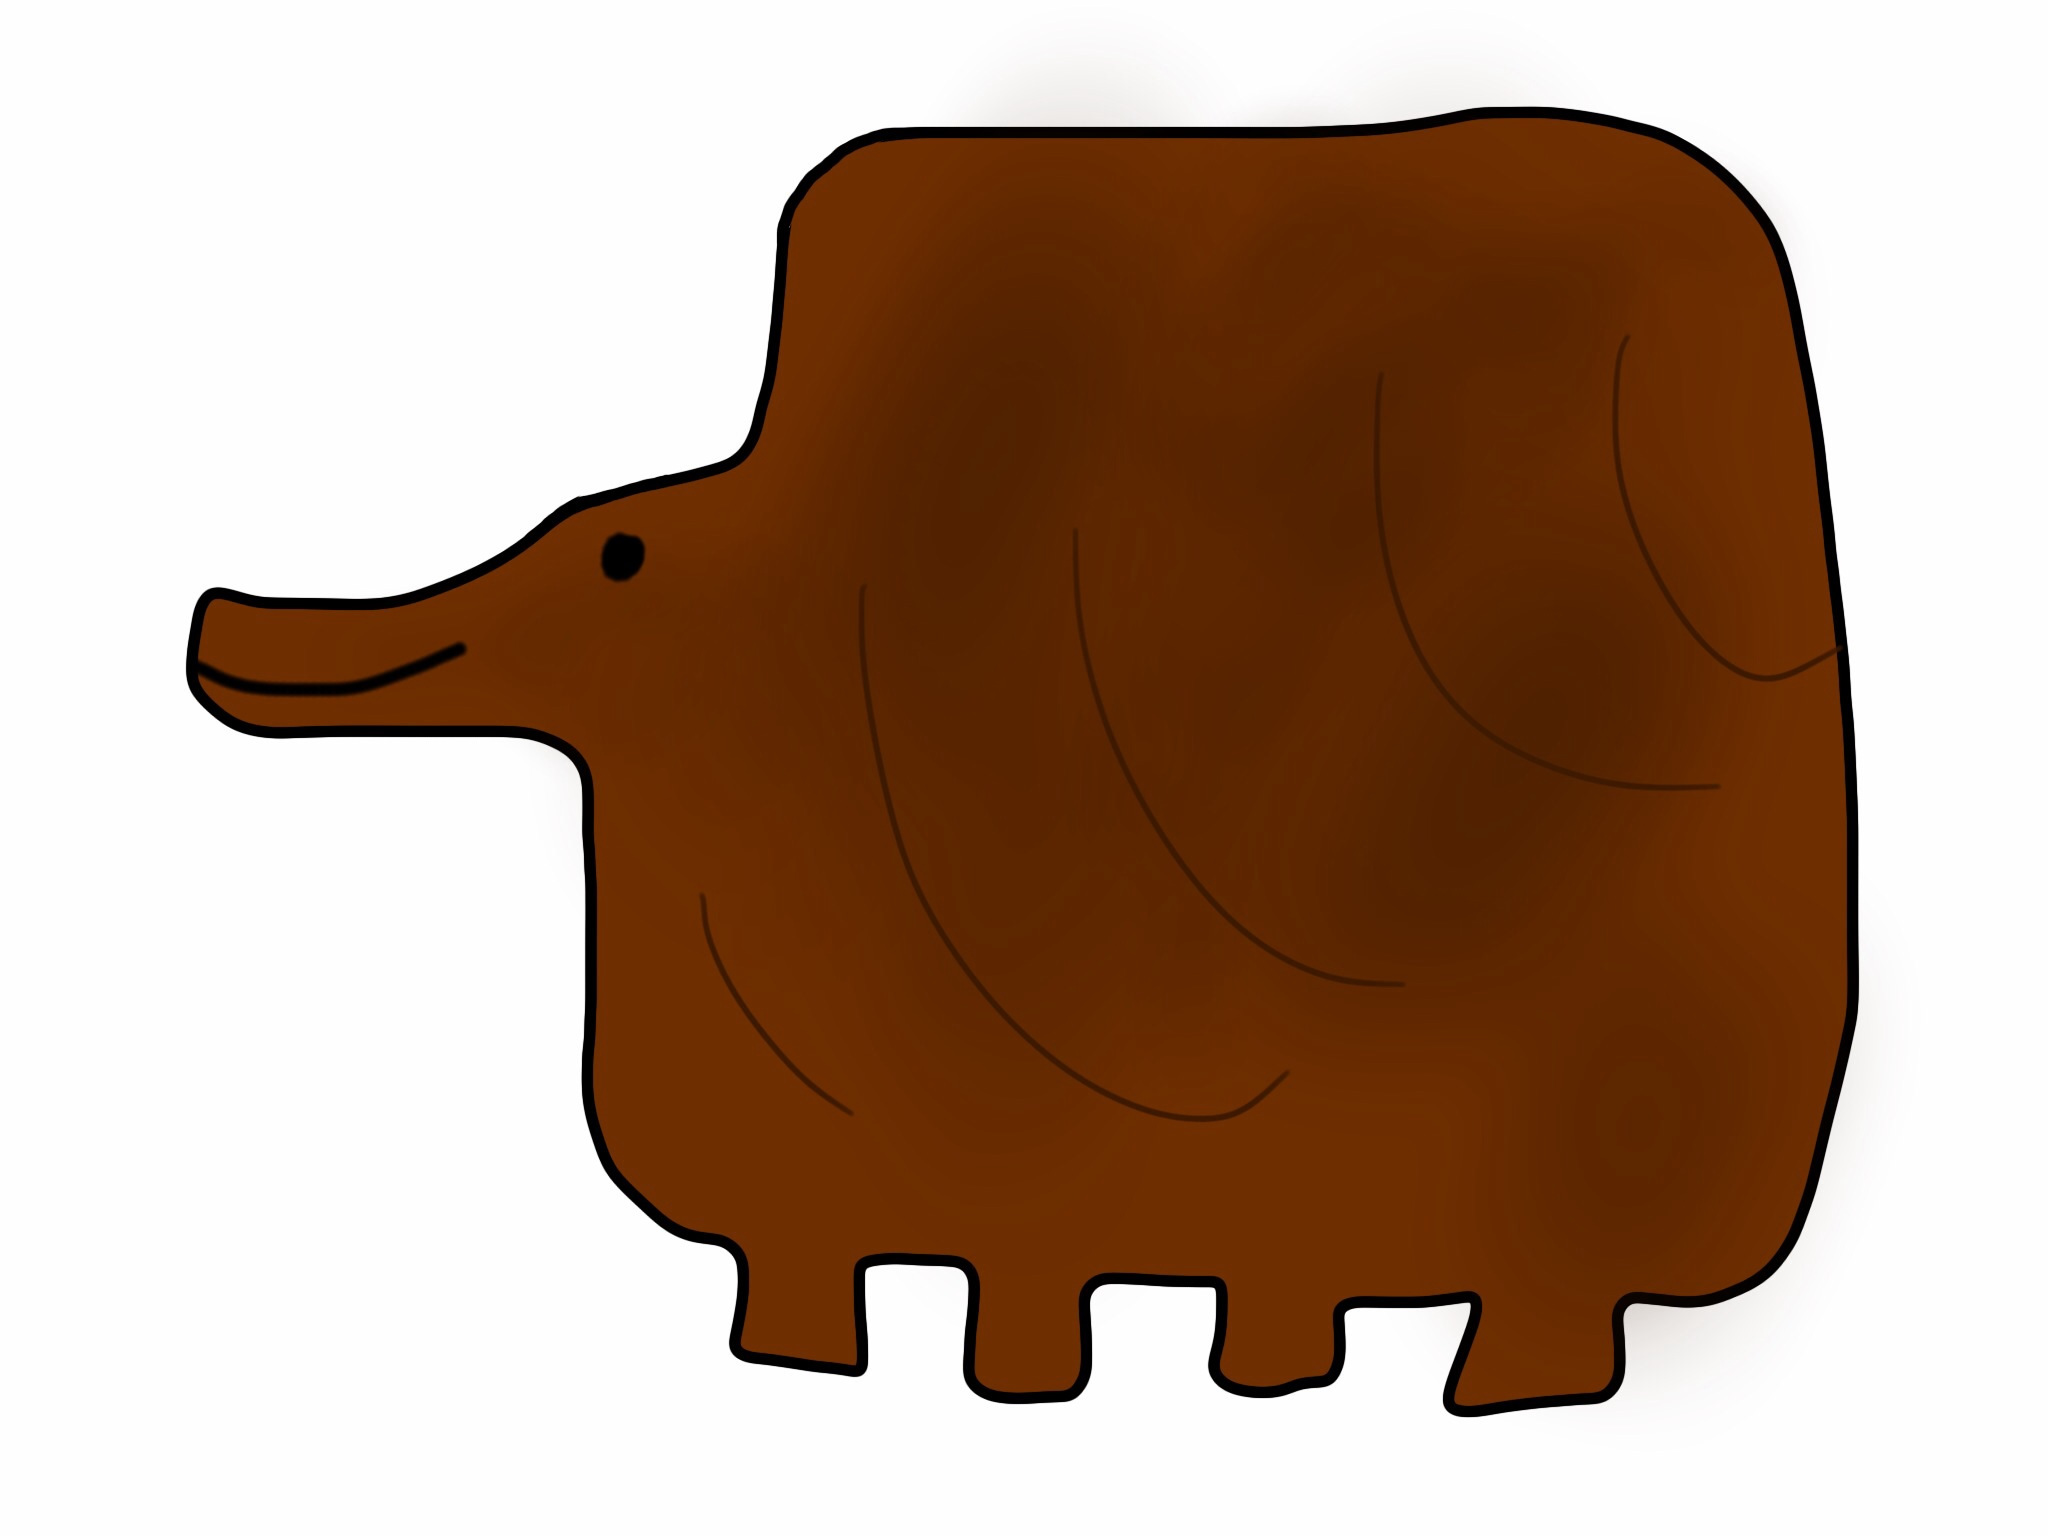 #003 Anteswine i have a name for him!! - Fakemon by jomy10